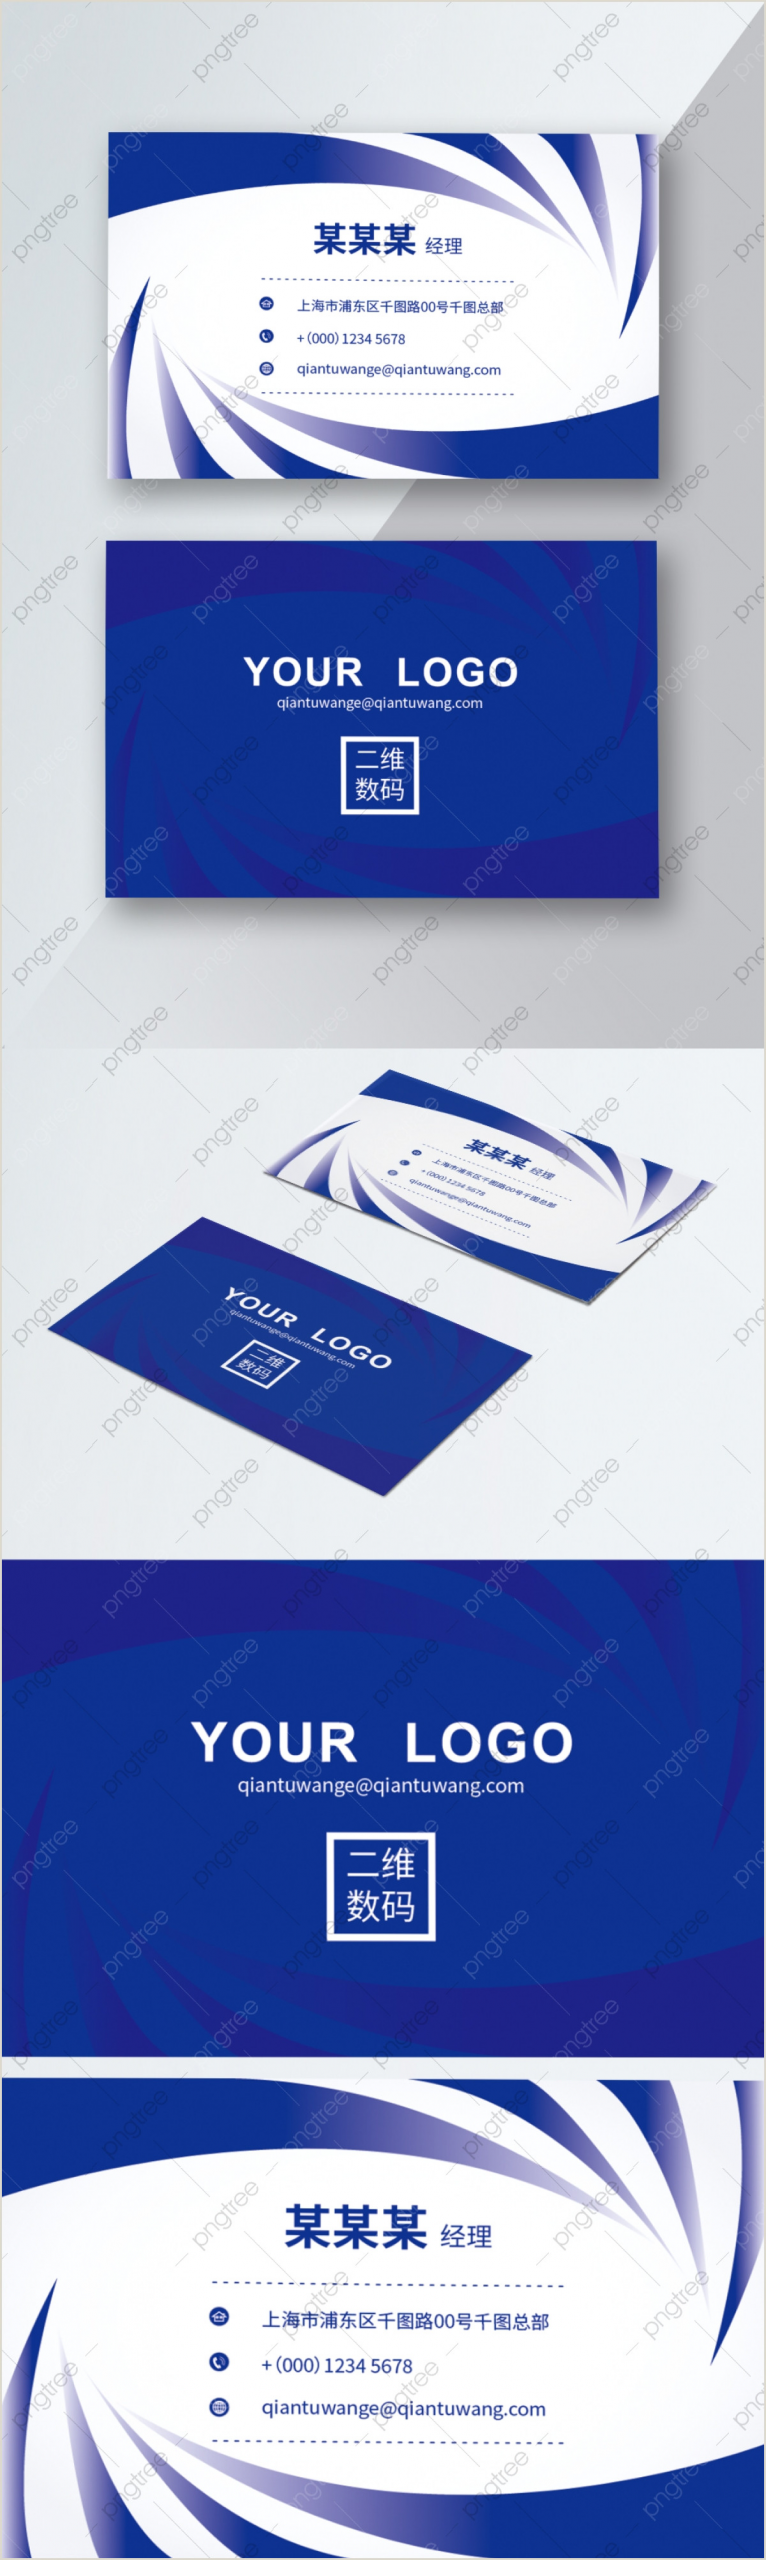 Background Design For Business Cards Business Card Background Vector Psd And Clipart With